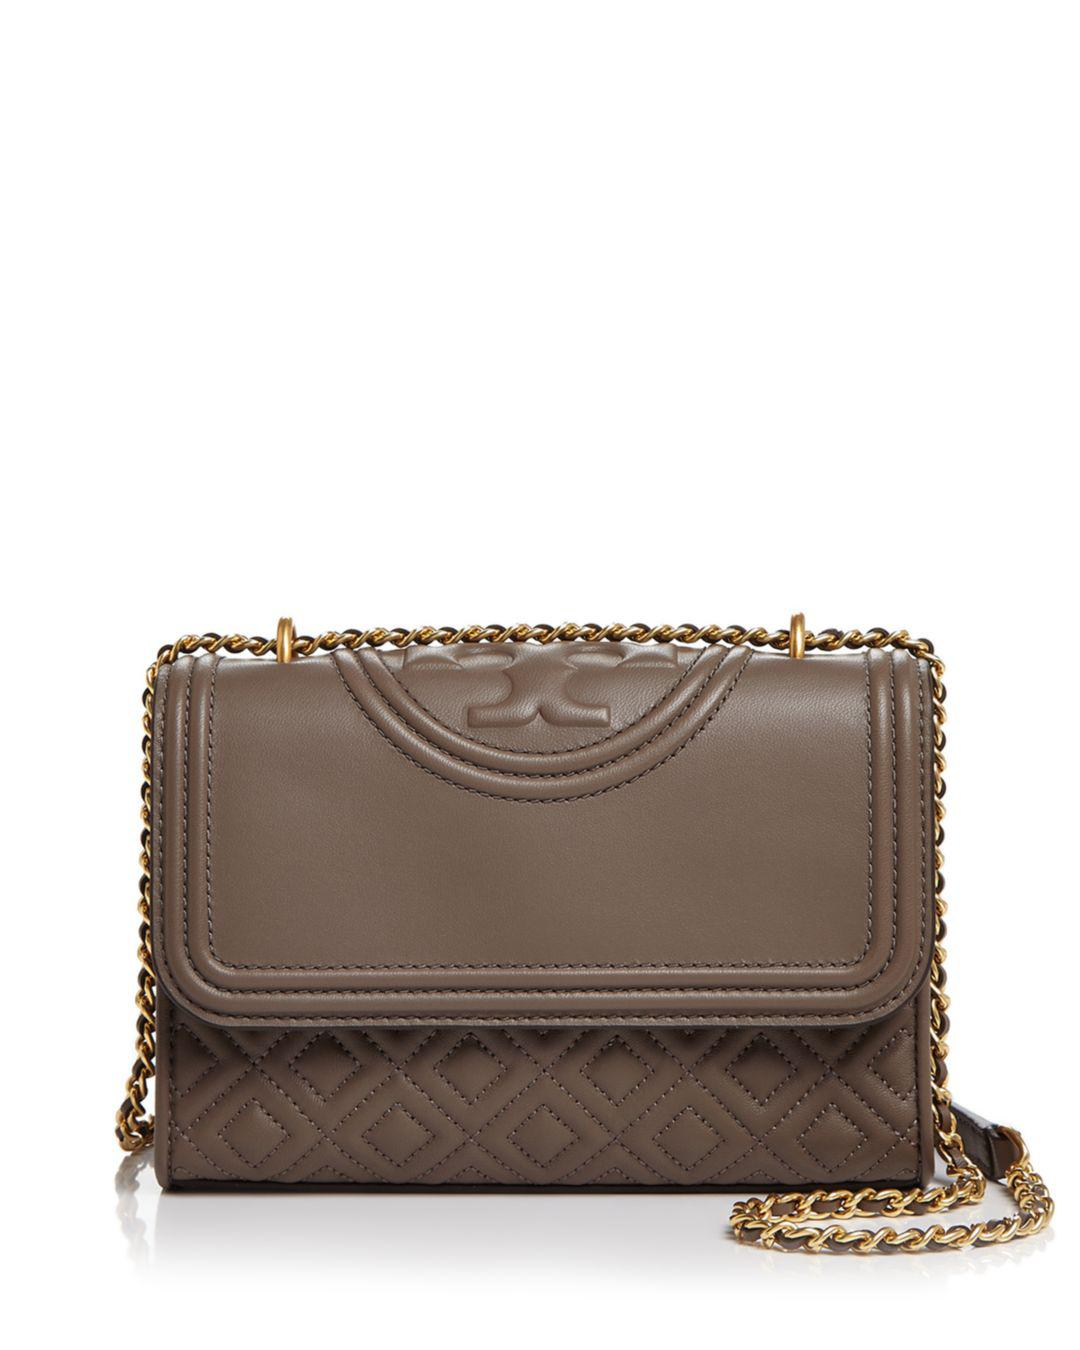 37af9d064ccb Tory Burch Fleming Convertible Small Leather Shoulder Bag - Save 69 ...